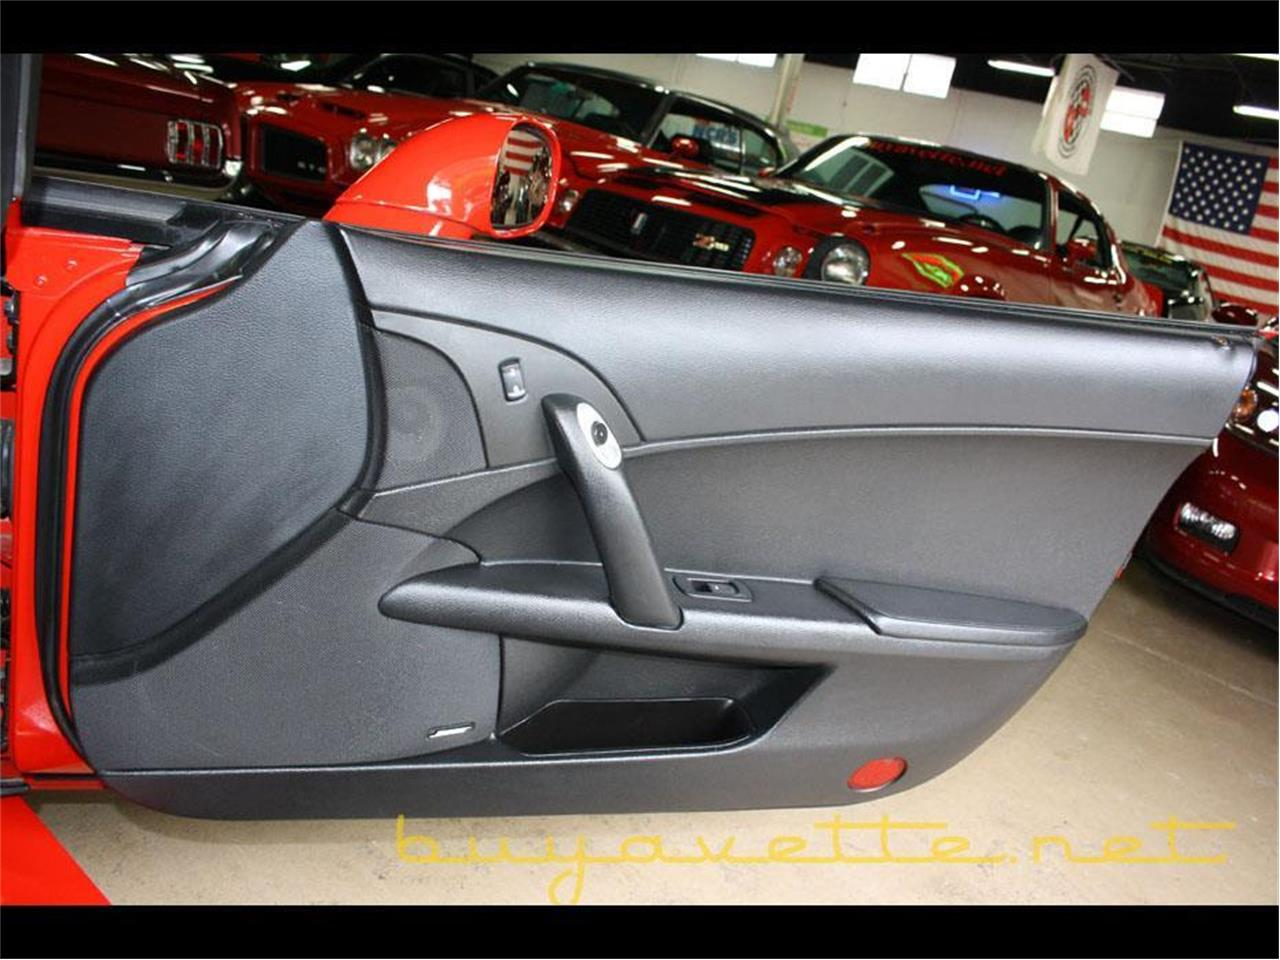 Large Picture of 2012 Chevrolet Corvette - $38,999.00 - Q12M